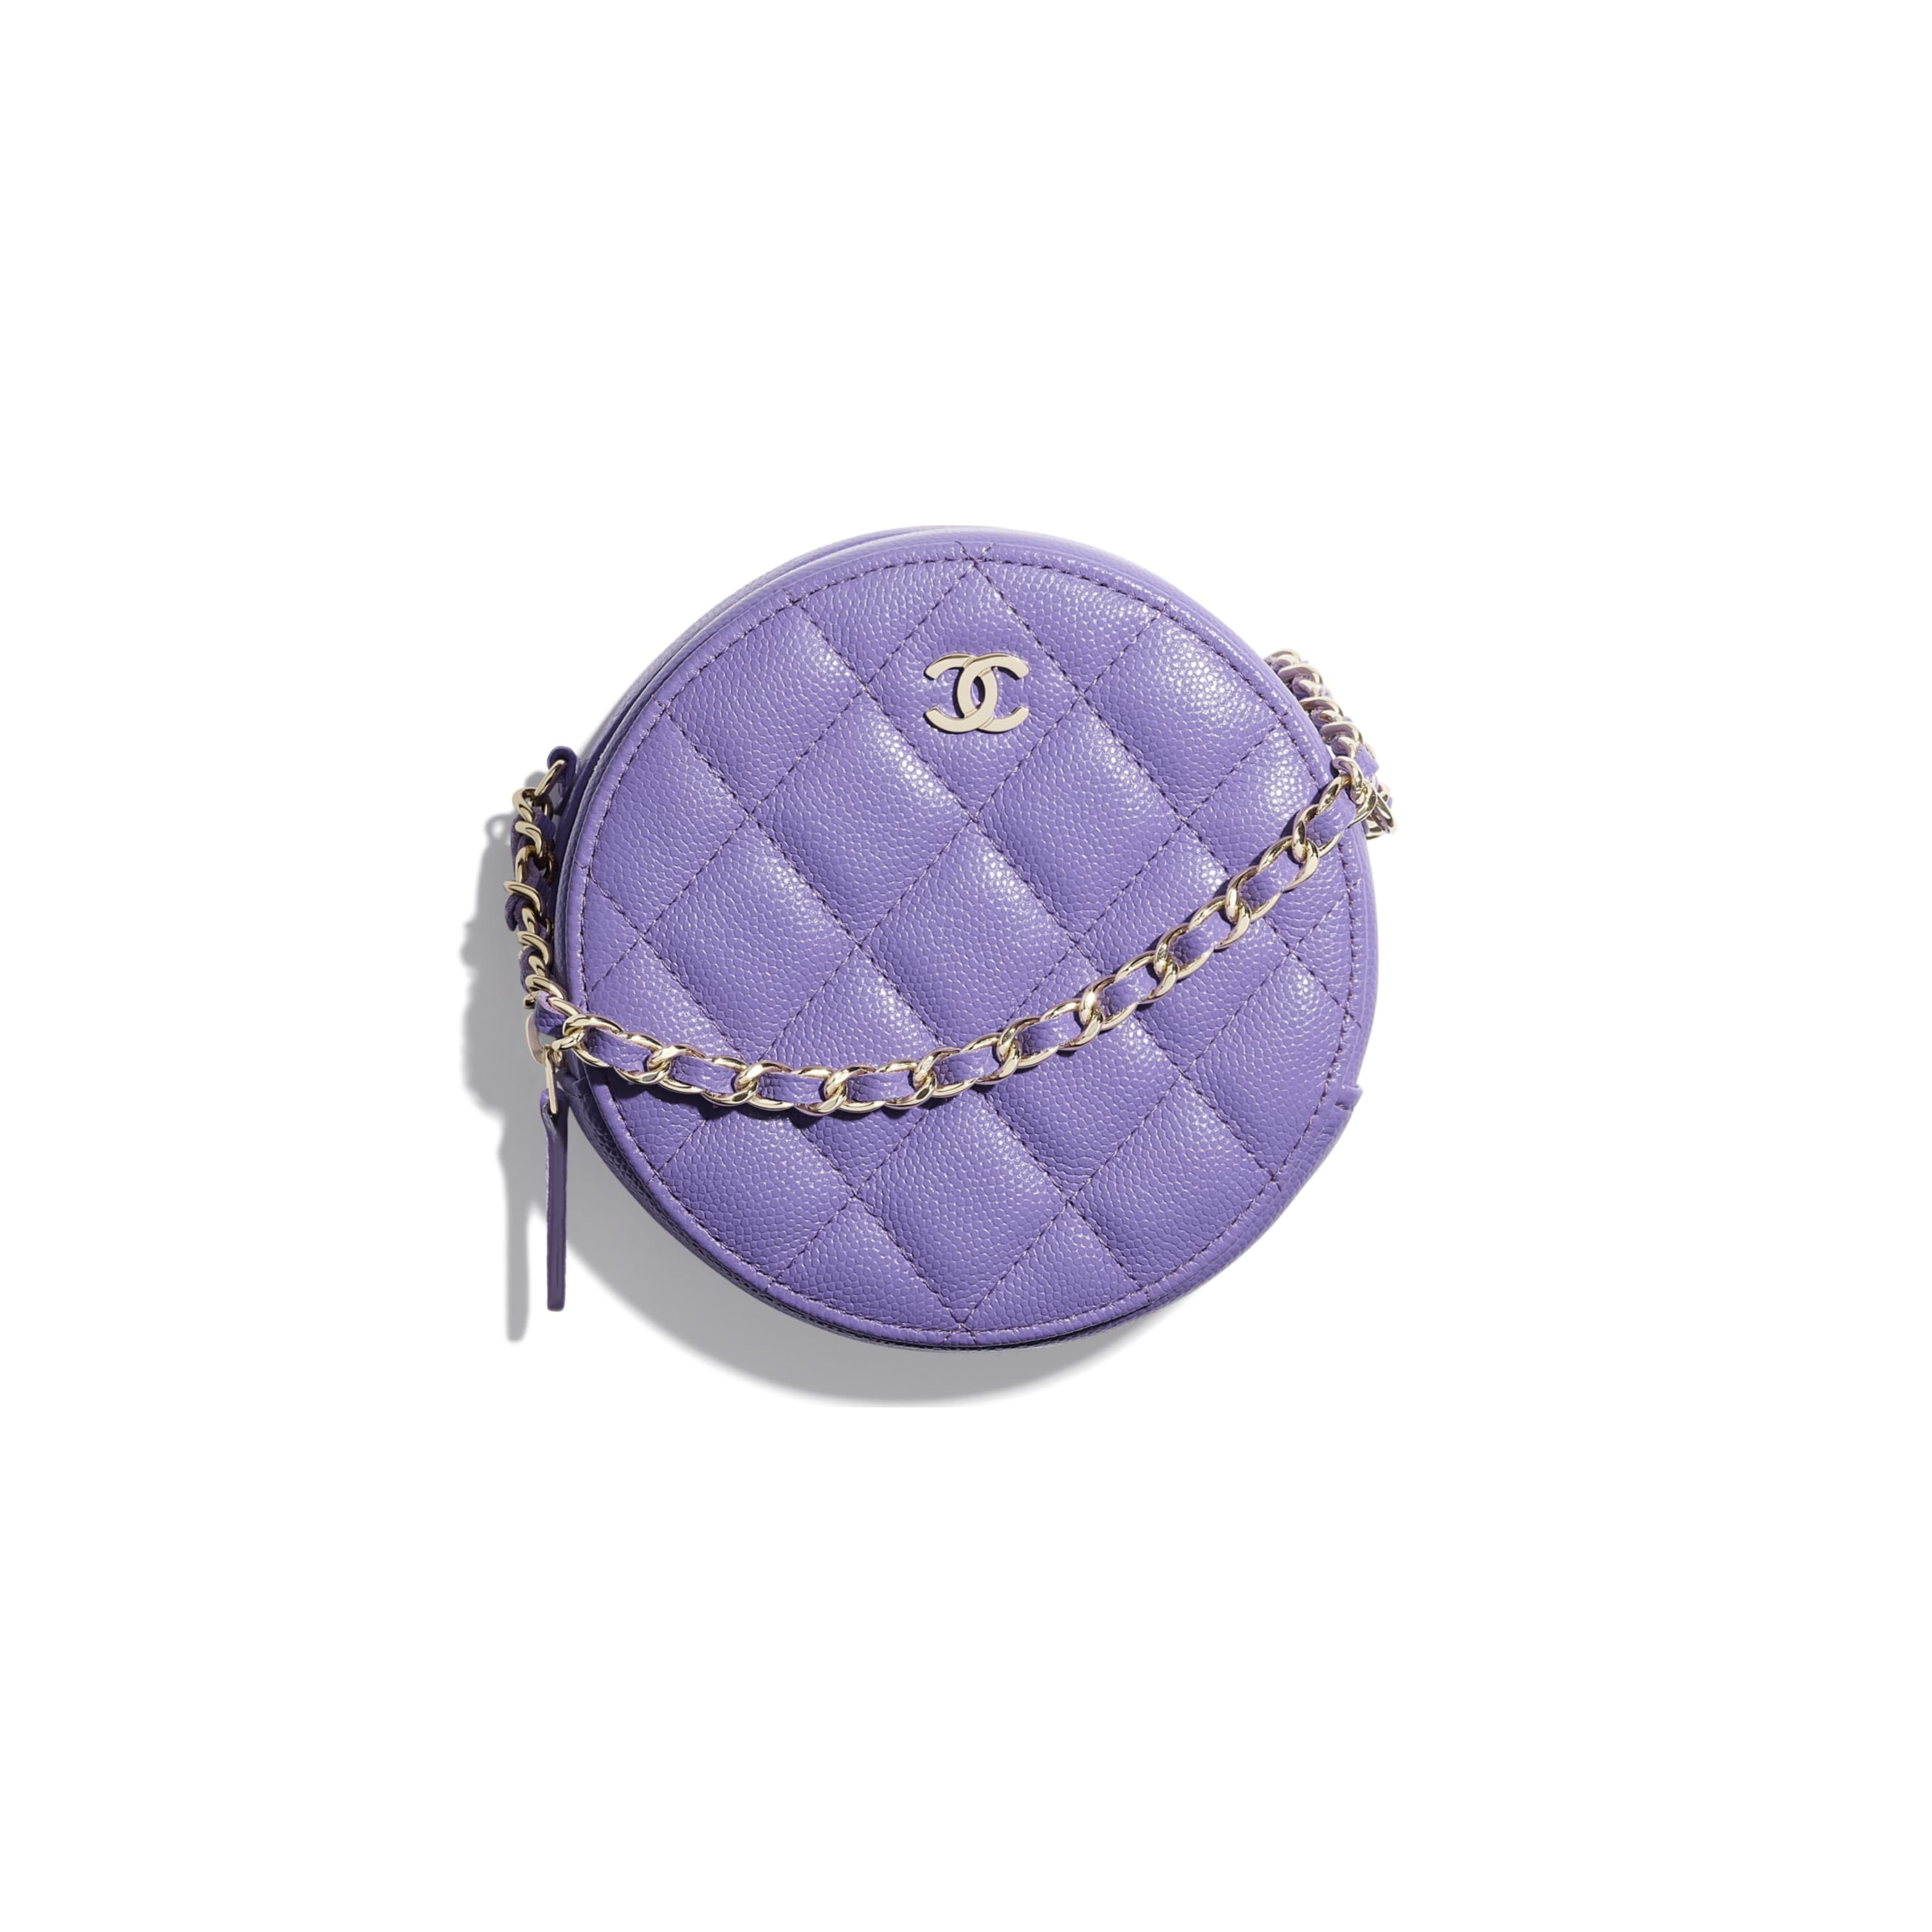 Classic Clutch With Chain - Purple - Grained Calfskin & Gold-Tone Metal - CHANEL - Default view - see standard sized version